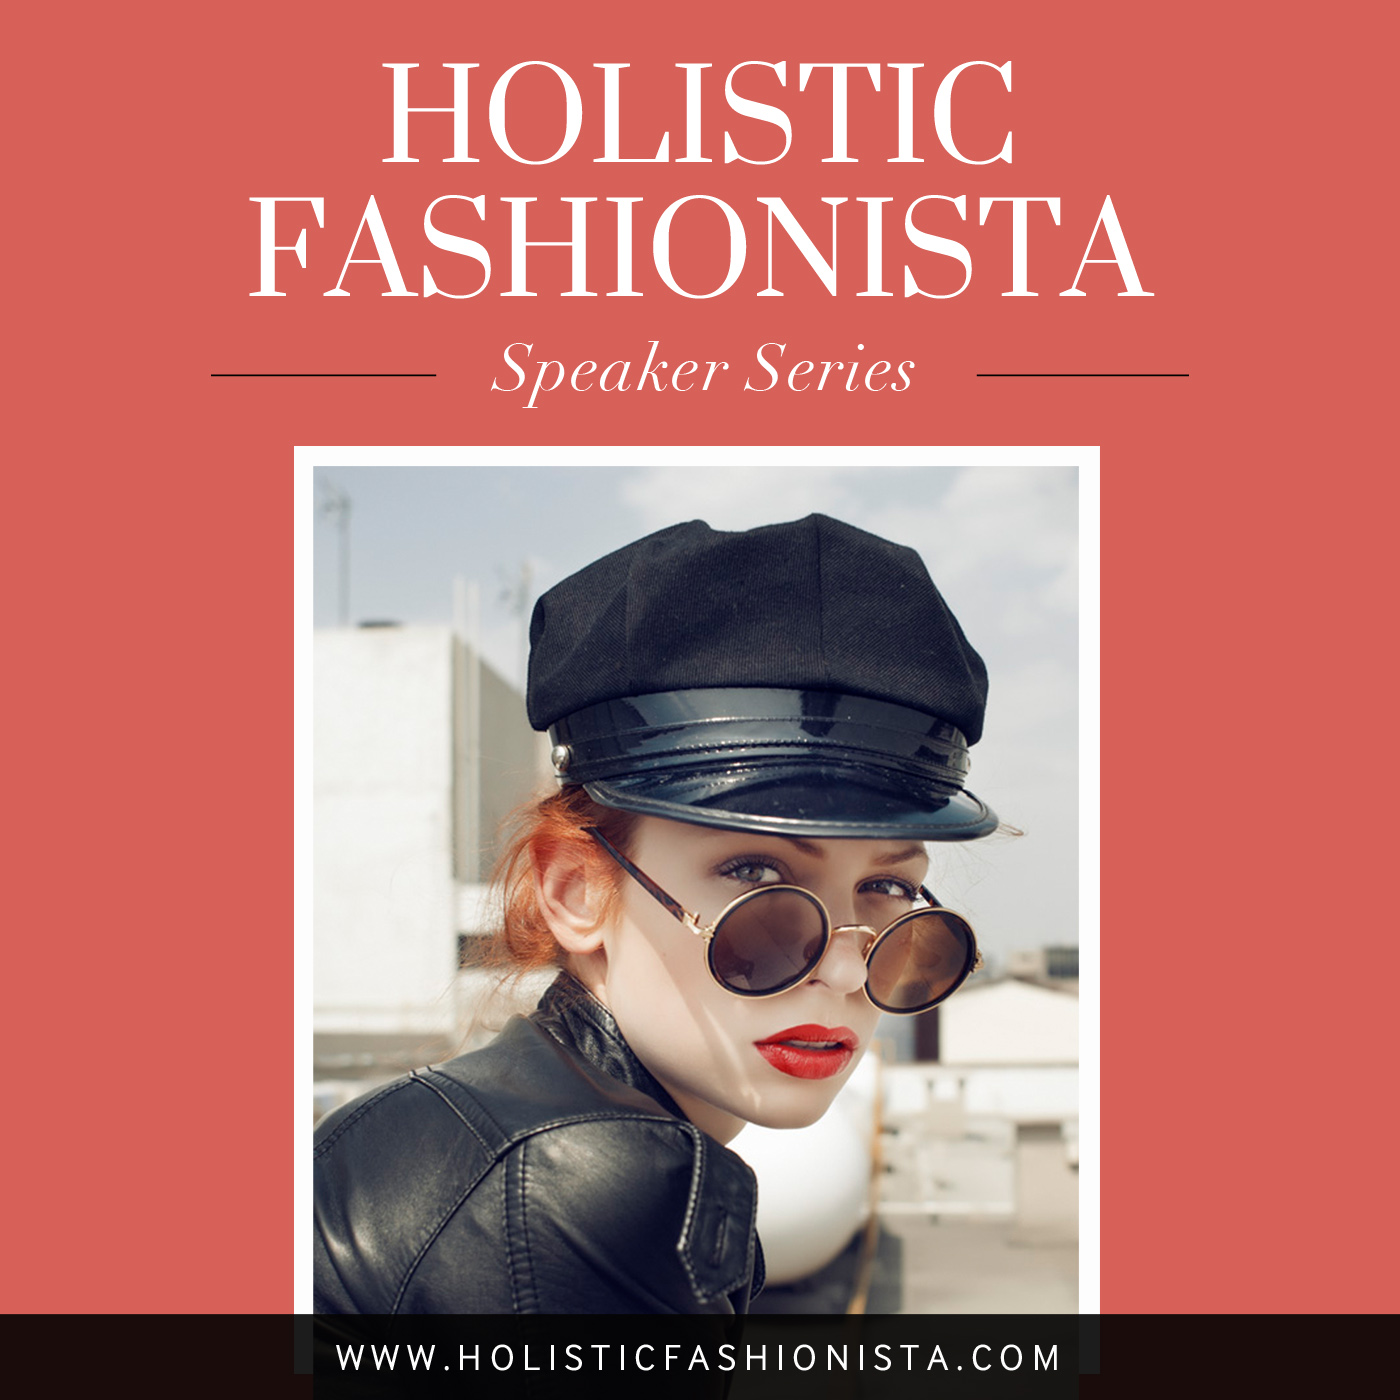 Speaker Series - Holistic Fashionista